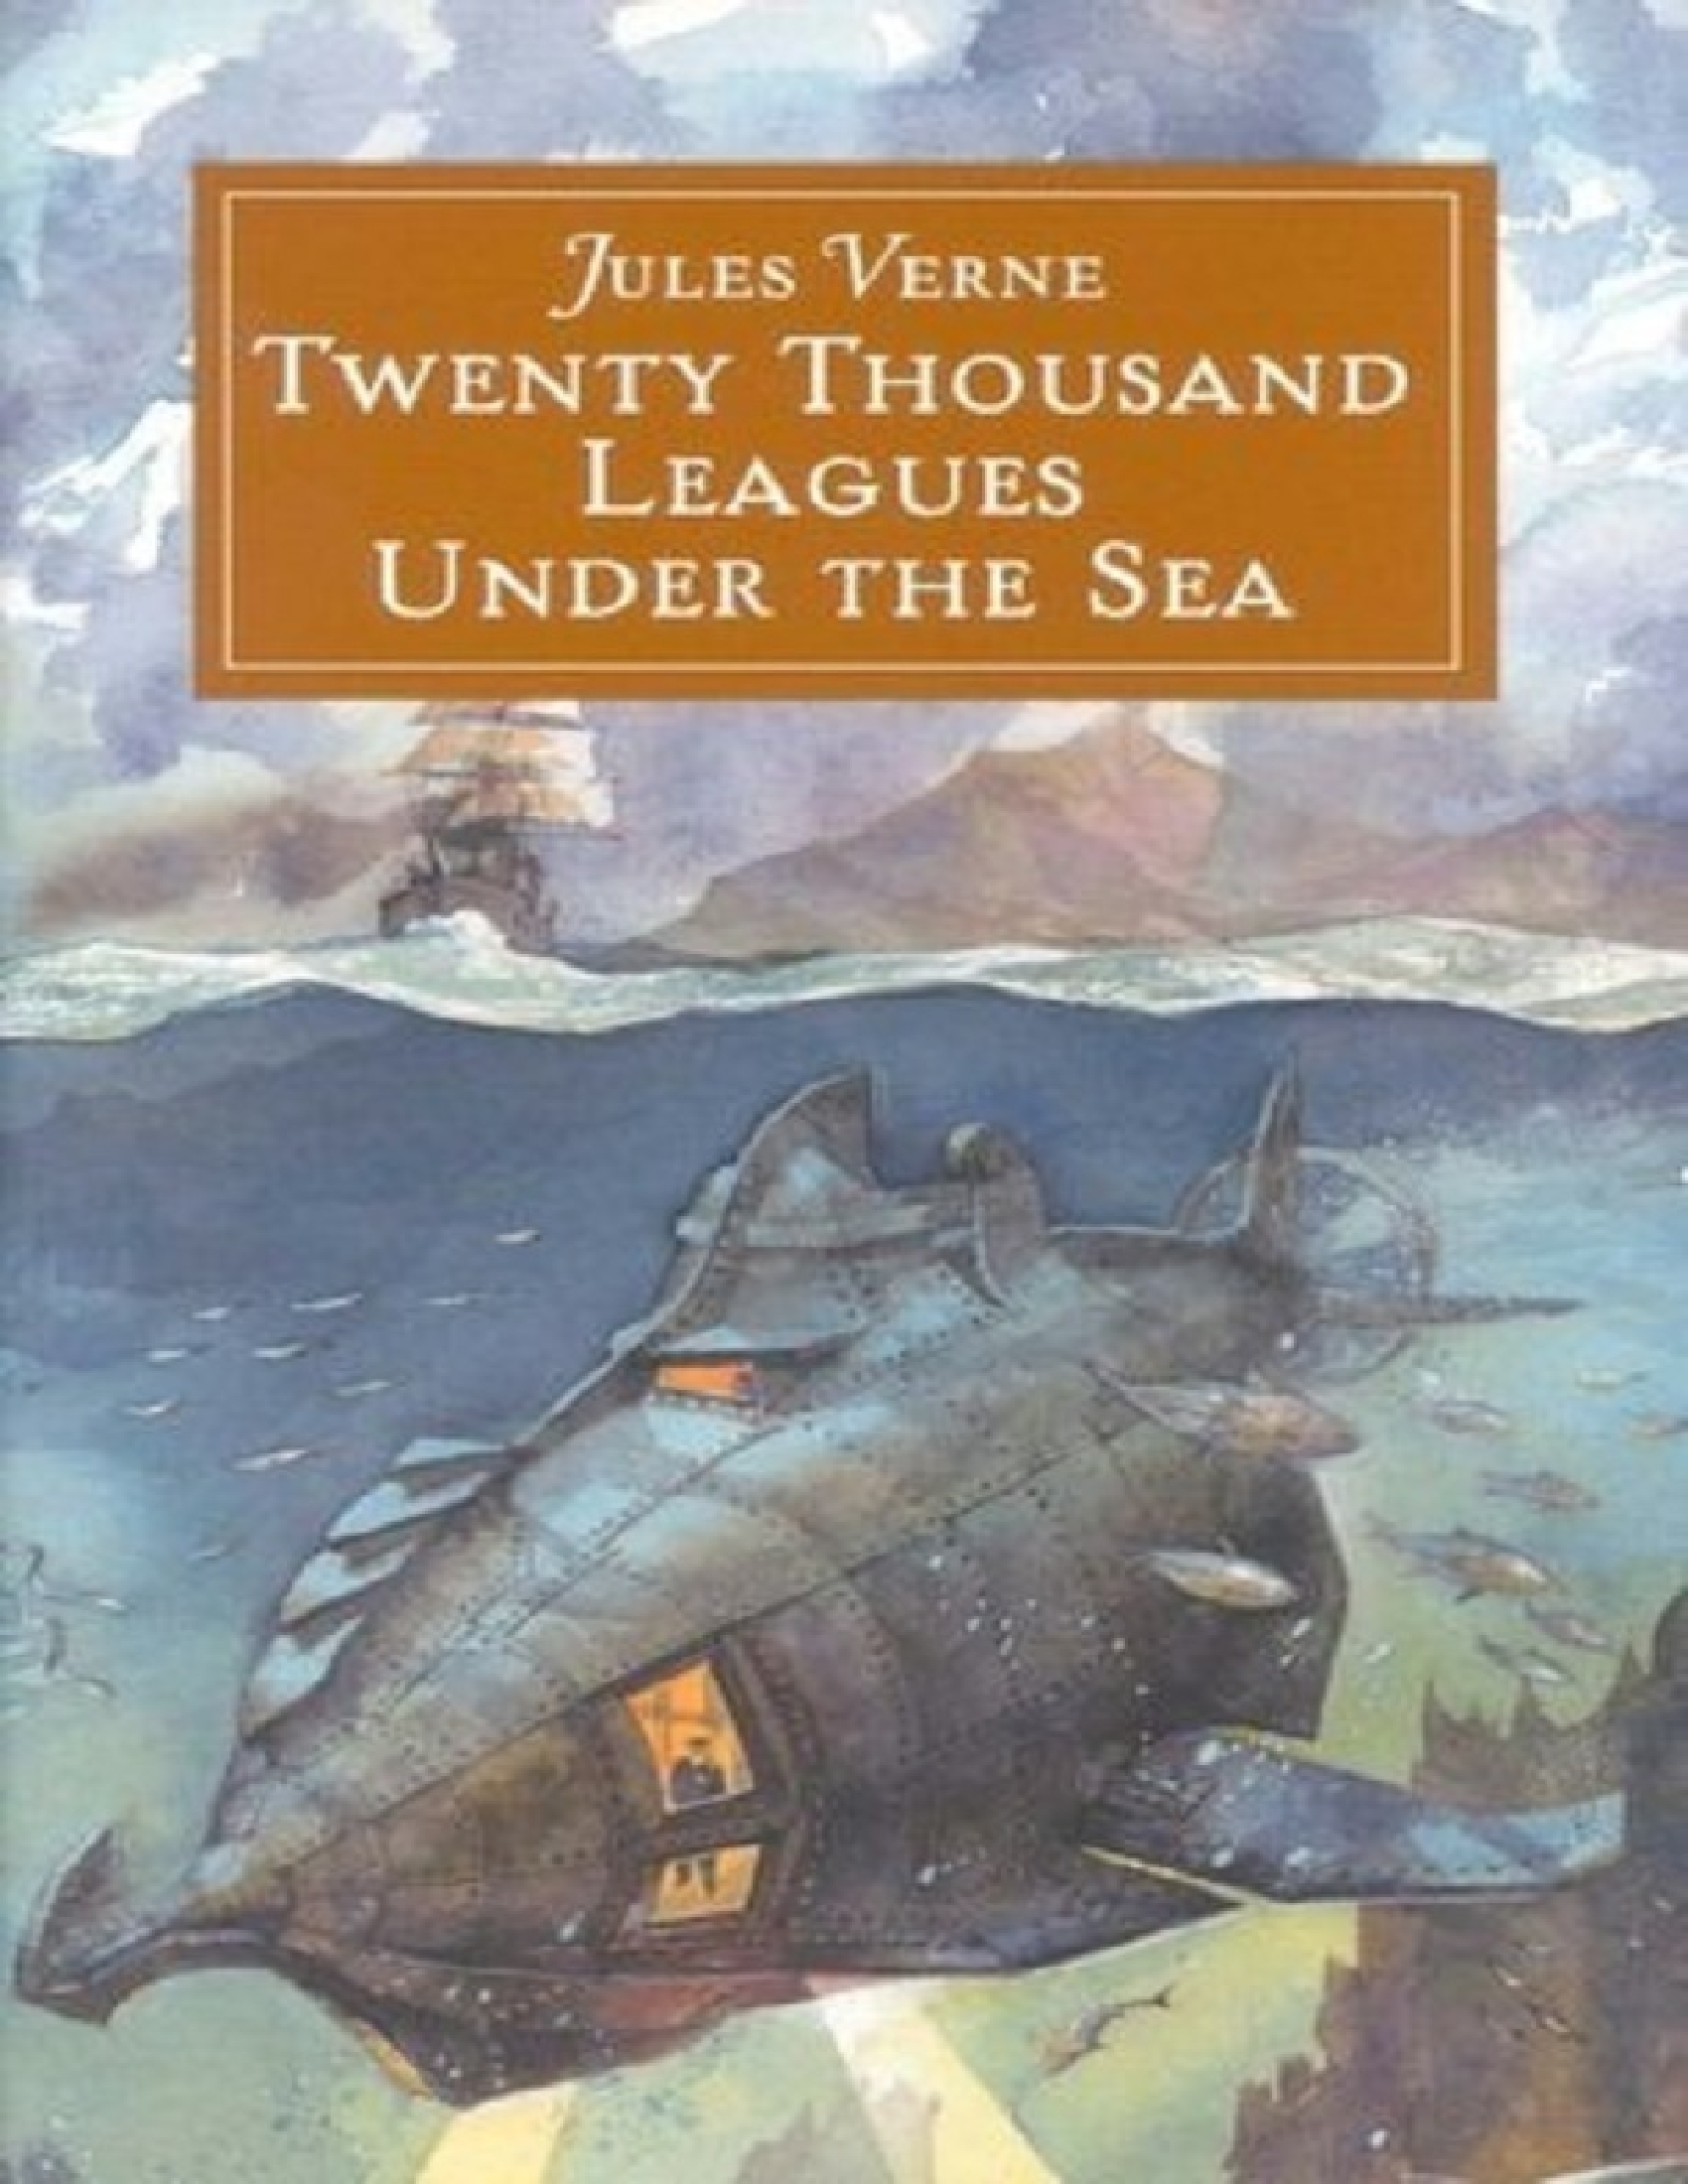 20 000 leagues under the sea overview In 1868, rumors of a sea monster attacking ships in the pacific ocean have created apprehension and fear among sailors, disrupting shipping lanes the us government invites professor pierre m aronnax and his assistant, conseil, to join an expedition to prove or disprove the monster's existence on board the frigate with them is the.